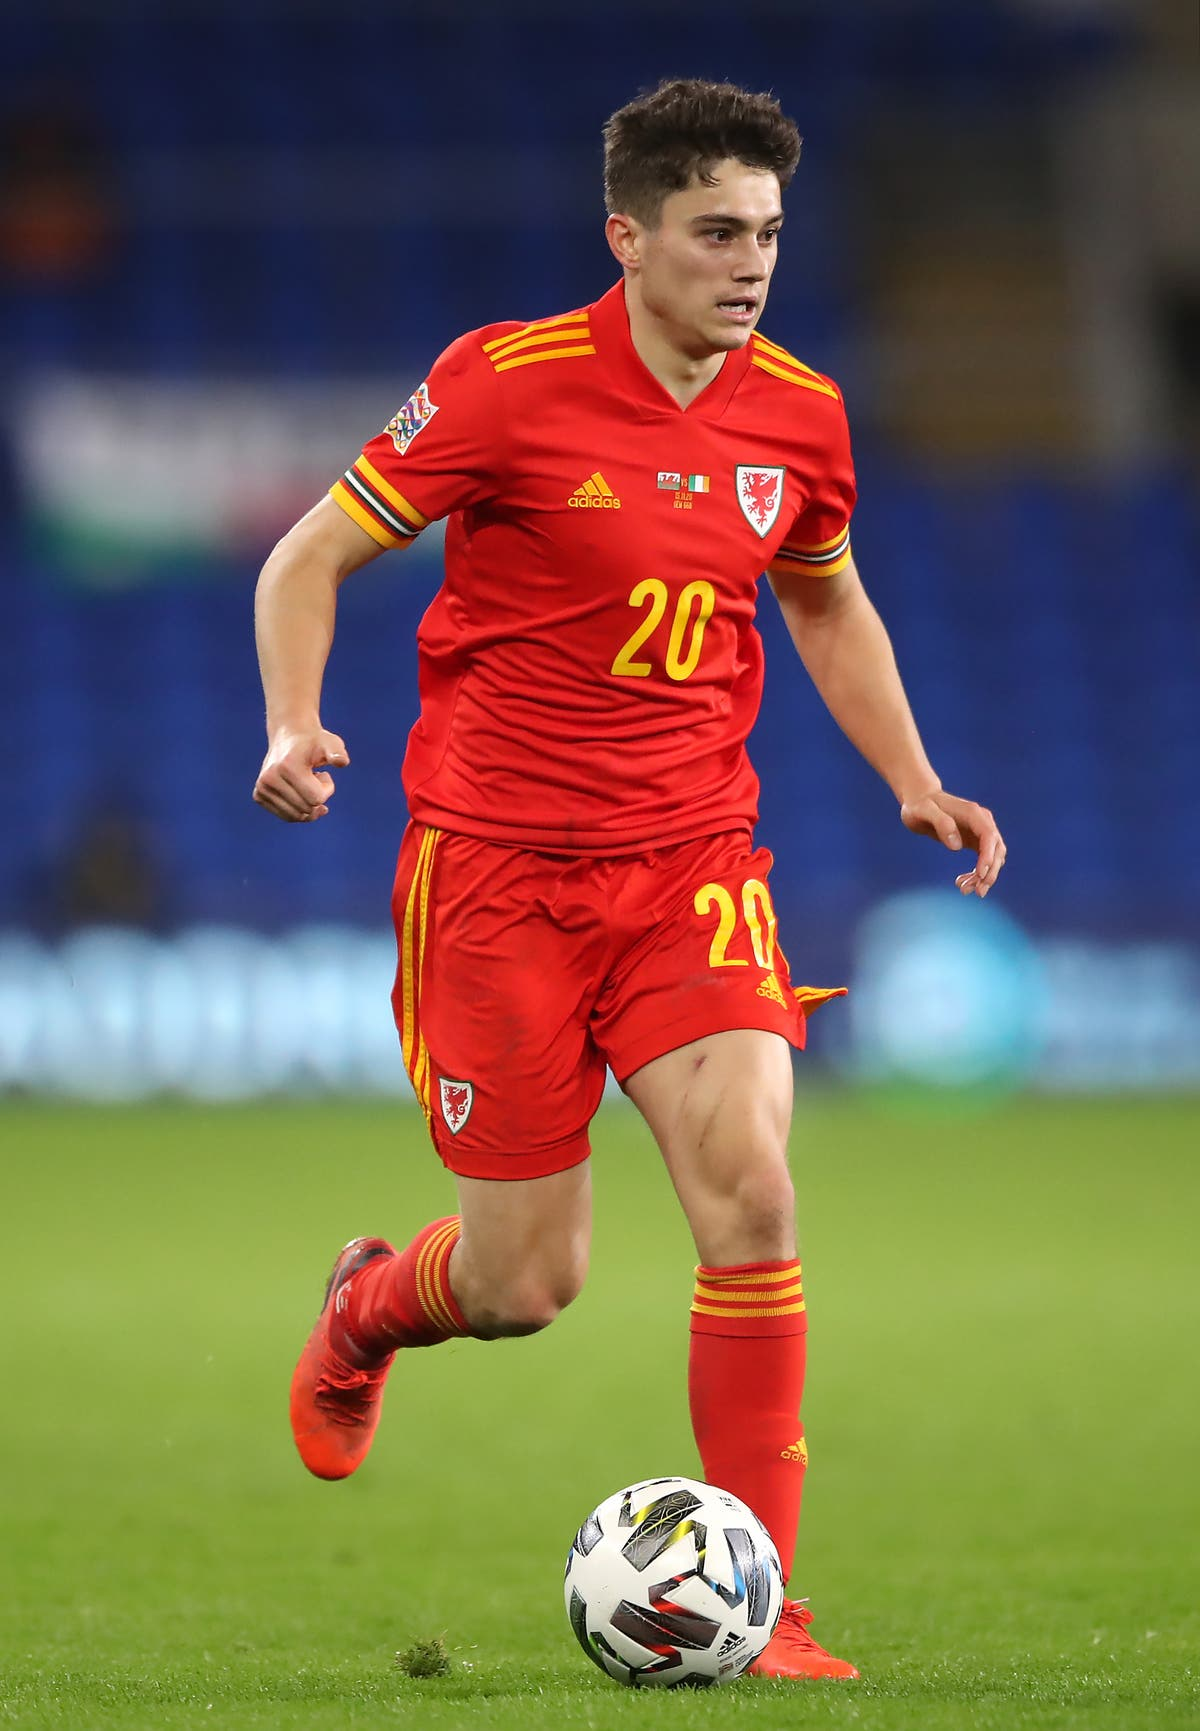 Daniel James believes opponents will fear Wales' attacking threat at Euro 2020